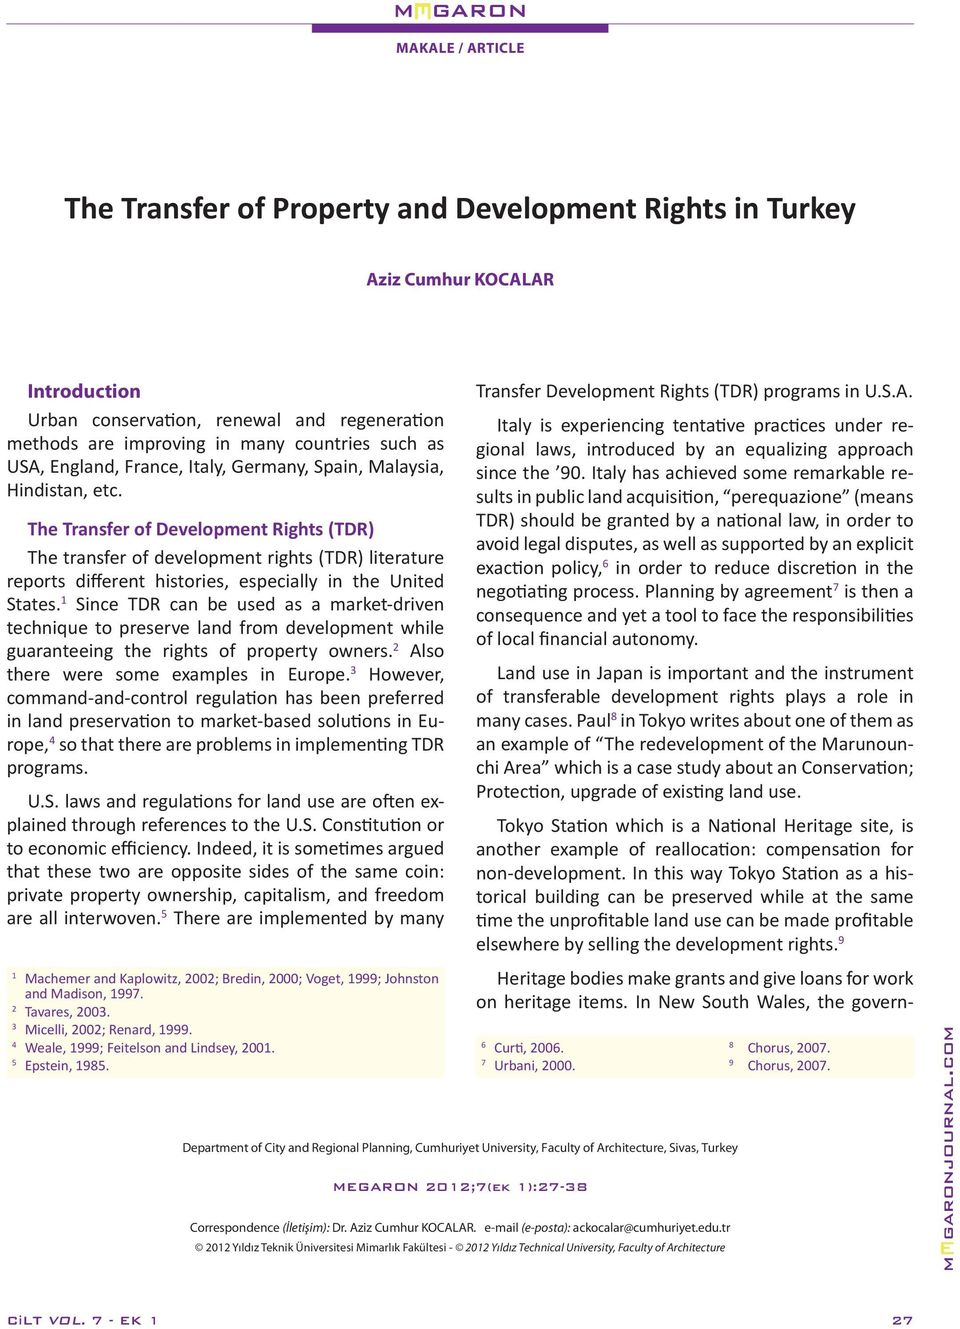 The Transfer of Development Rights (TDR) The transfer of development rights (TDR) literature reports different histories, especially in the United States.